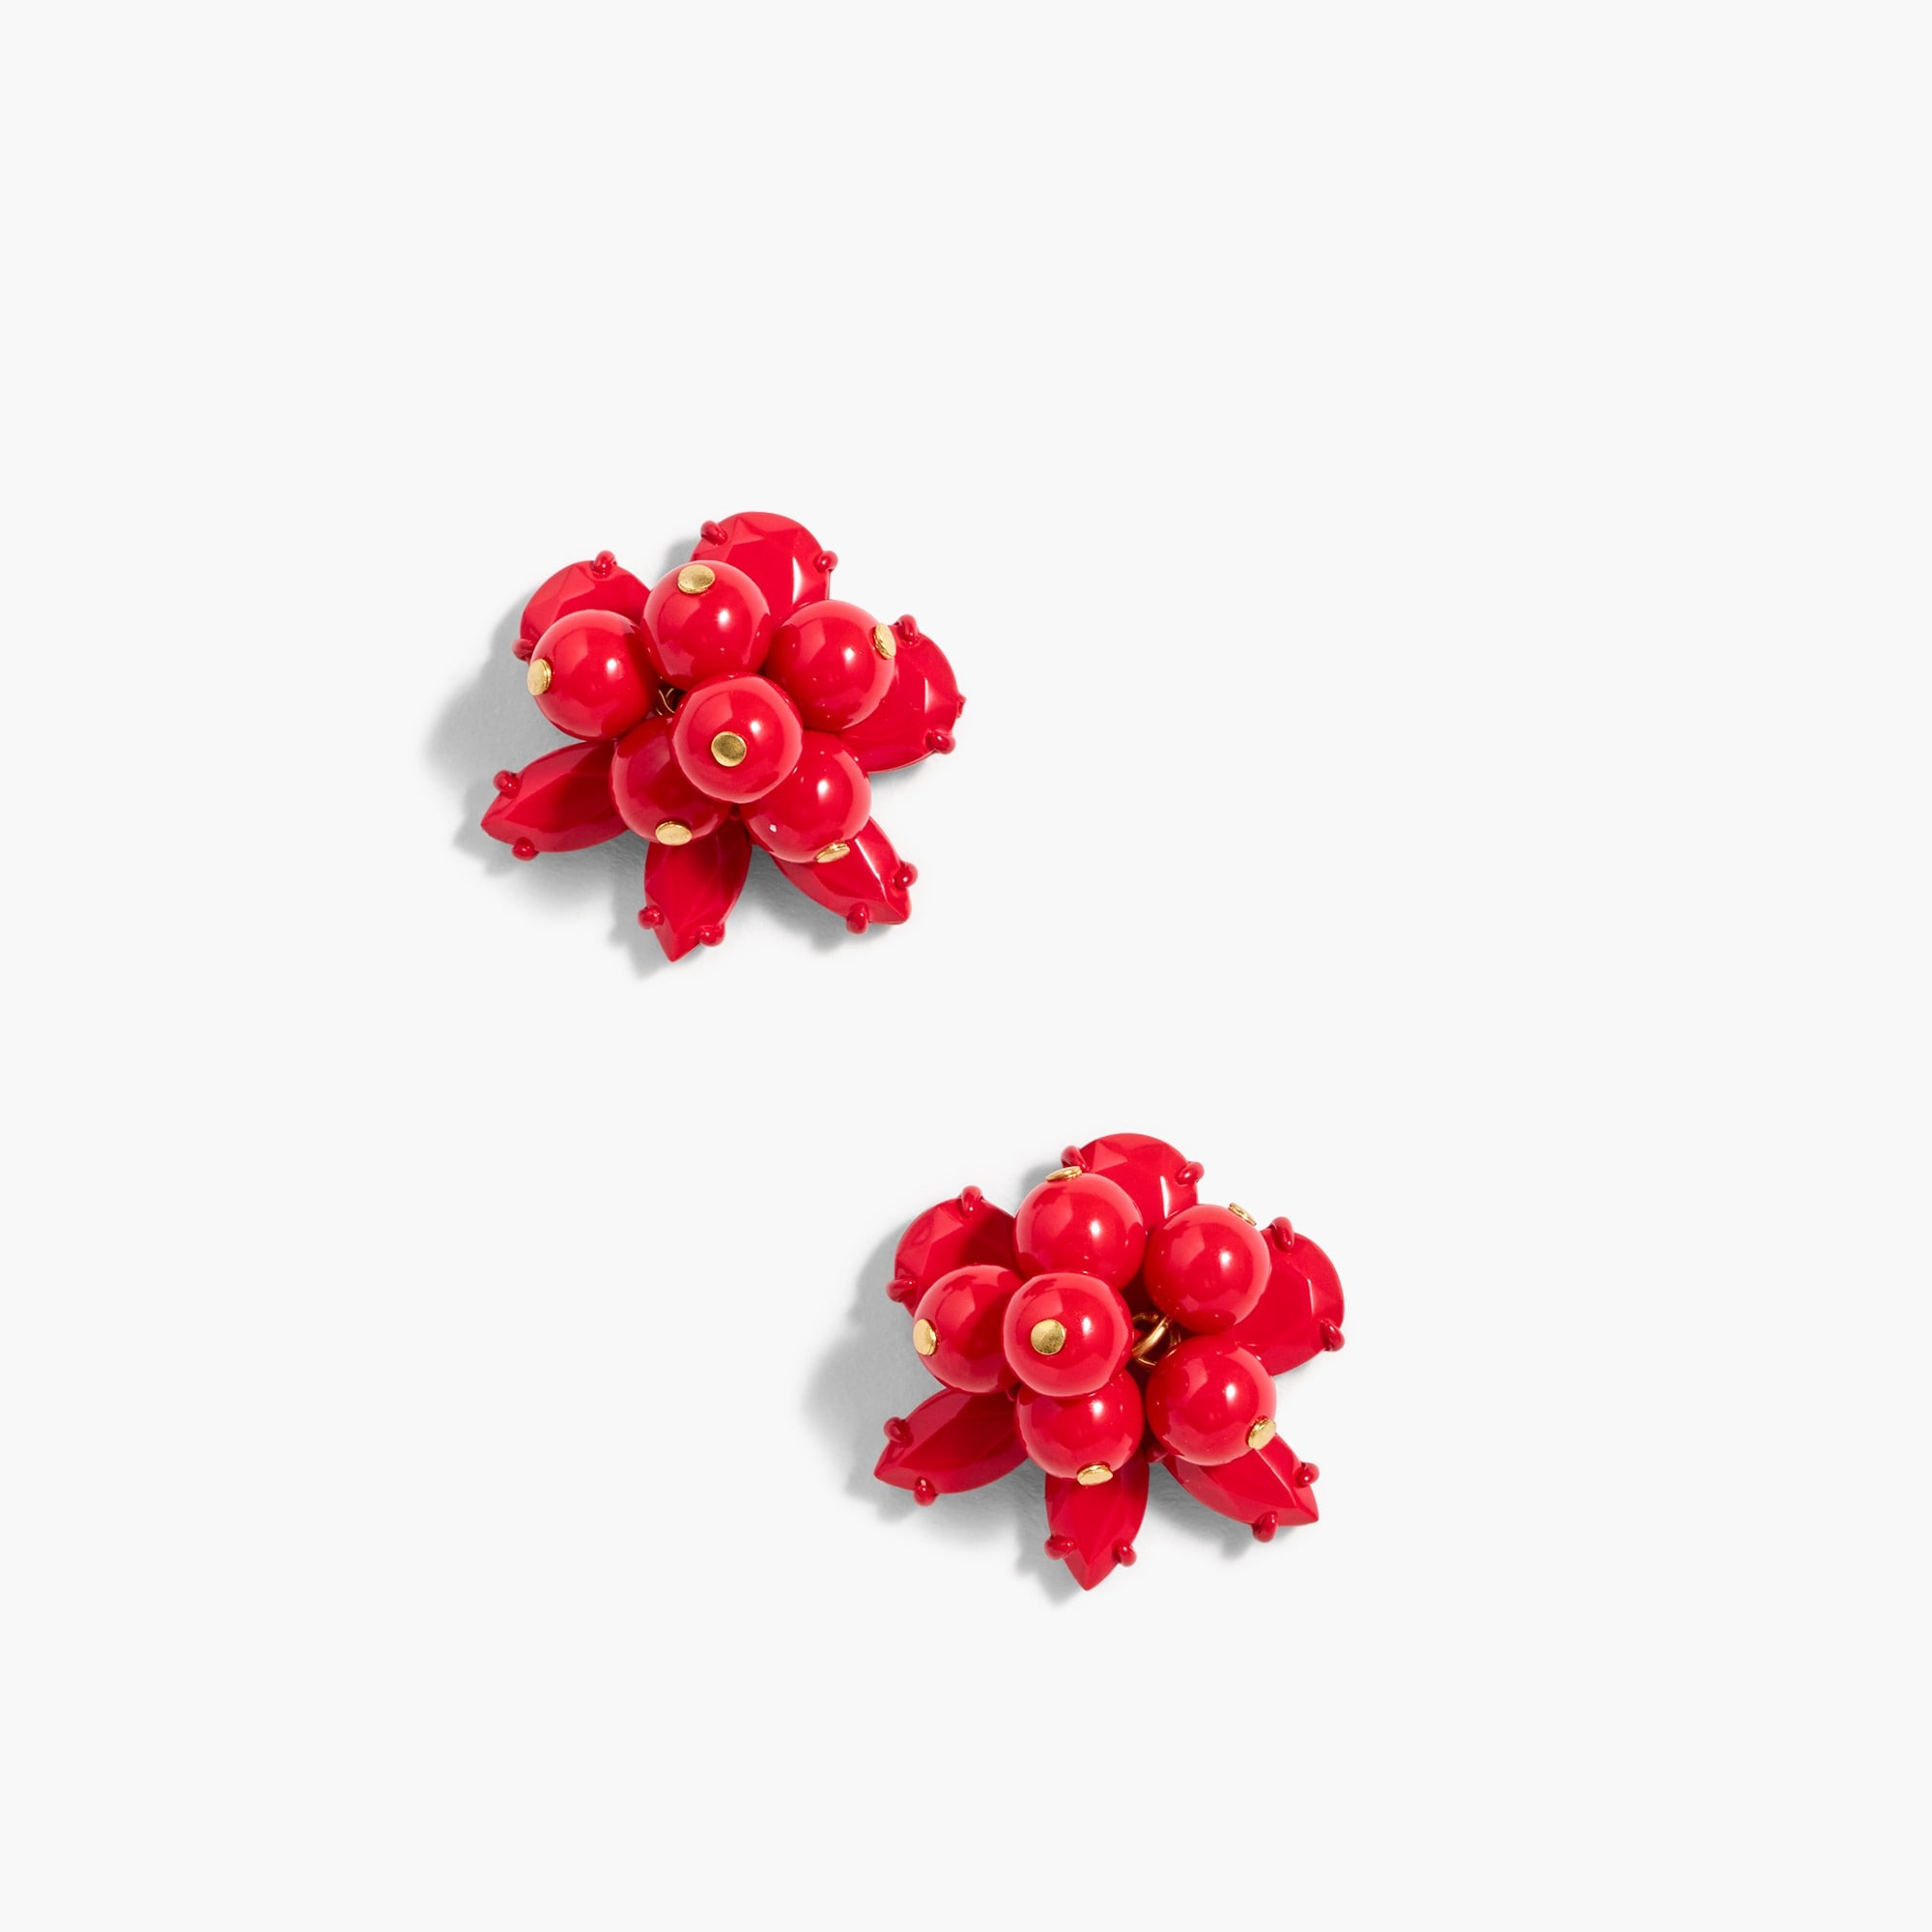 colorful cluster earrings : women earrings